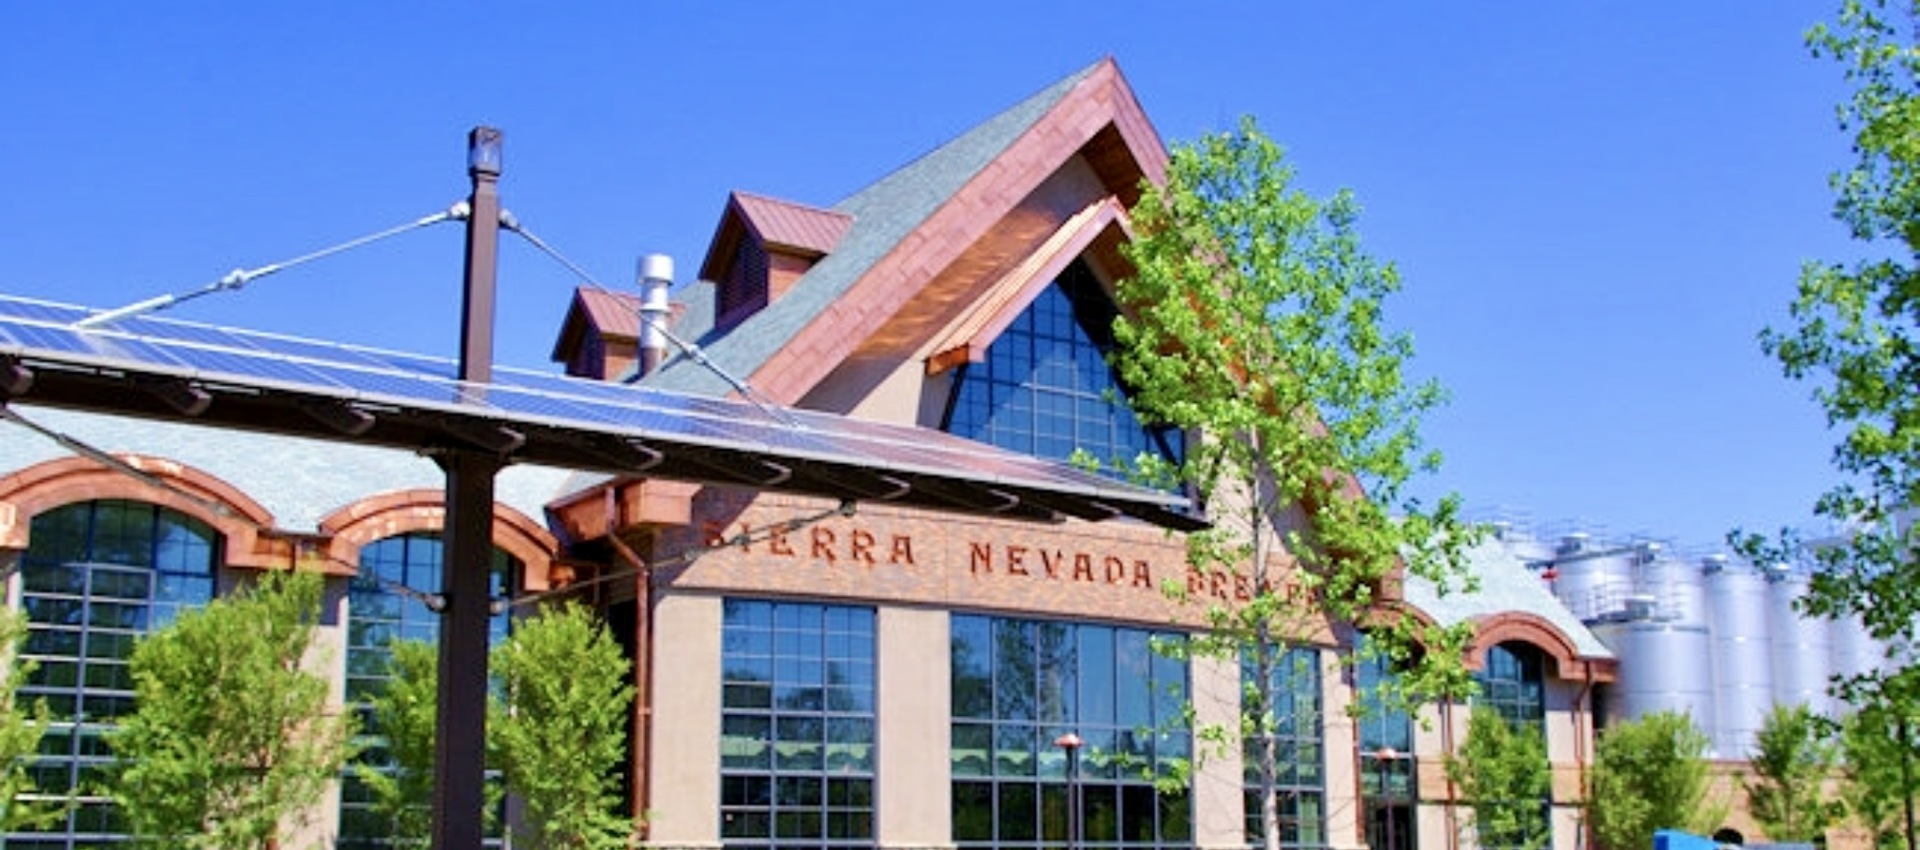 Sierra Nevada Brewery Donates $10K for Water Quality